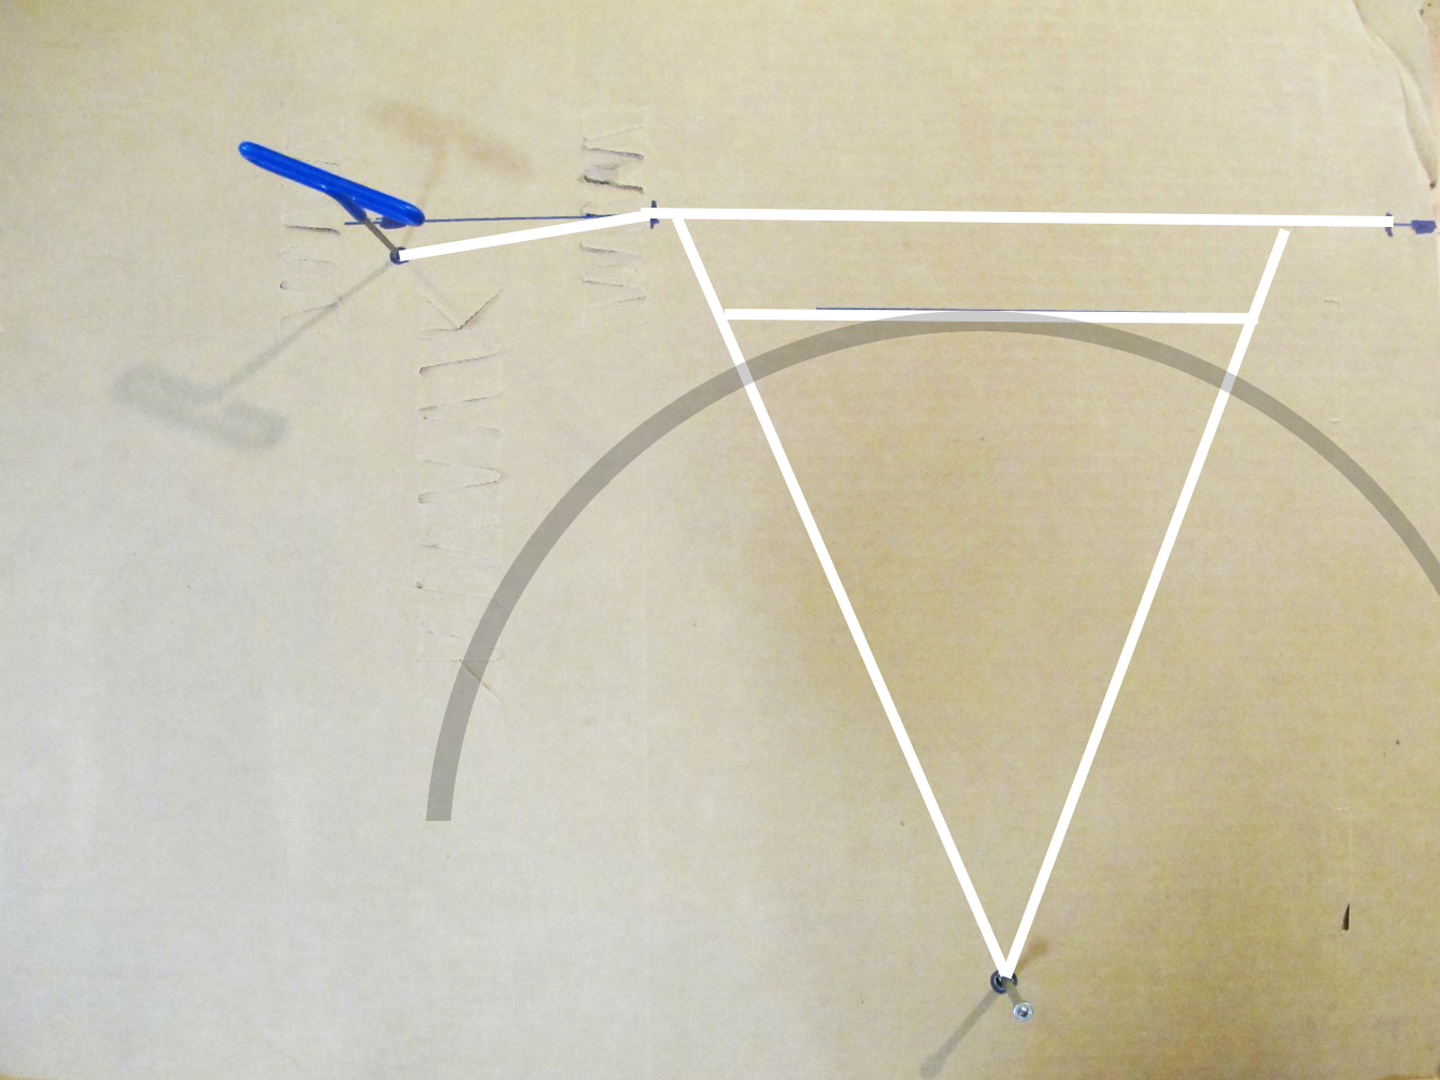 Sketch the side view of your rack and be sure to include, either by drawing or notation, any details such as pannier bars, light mounts, etc.